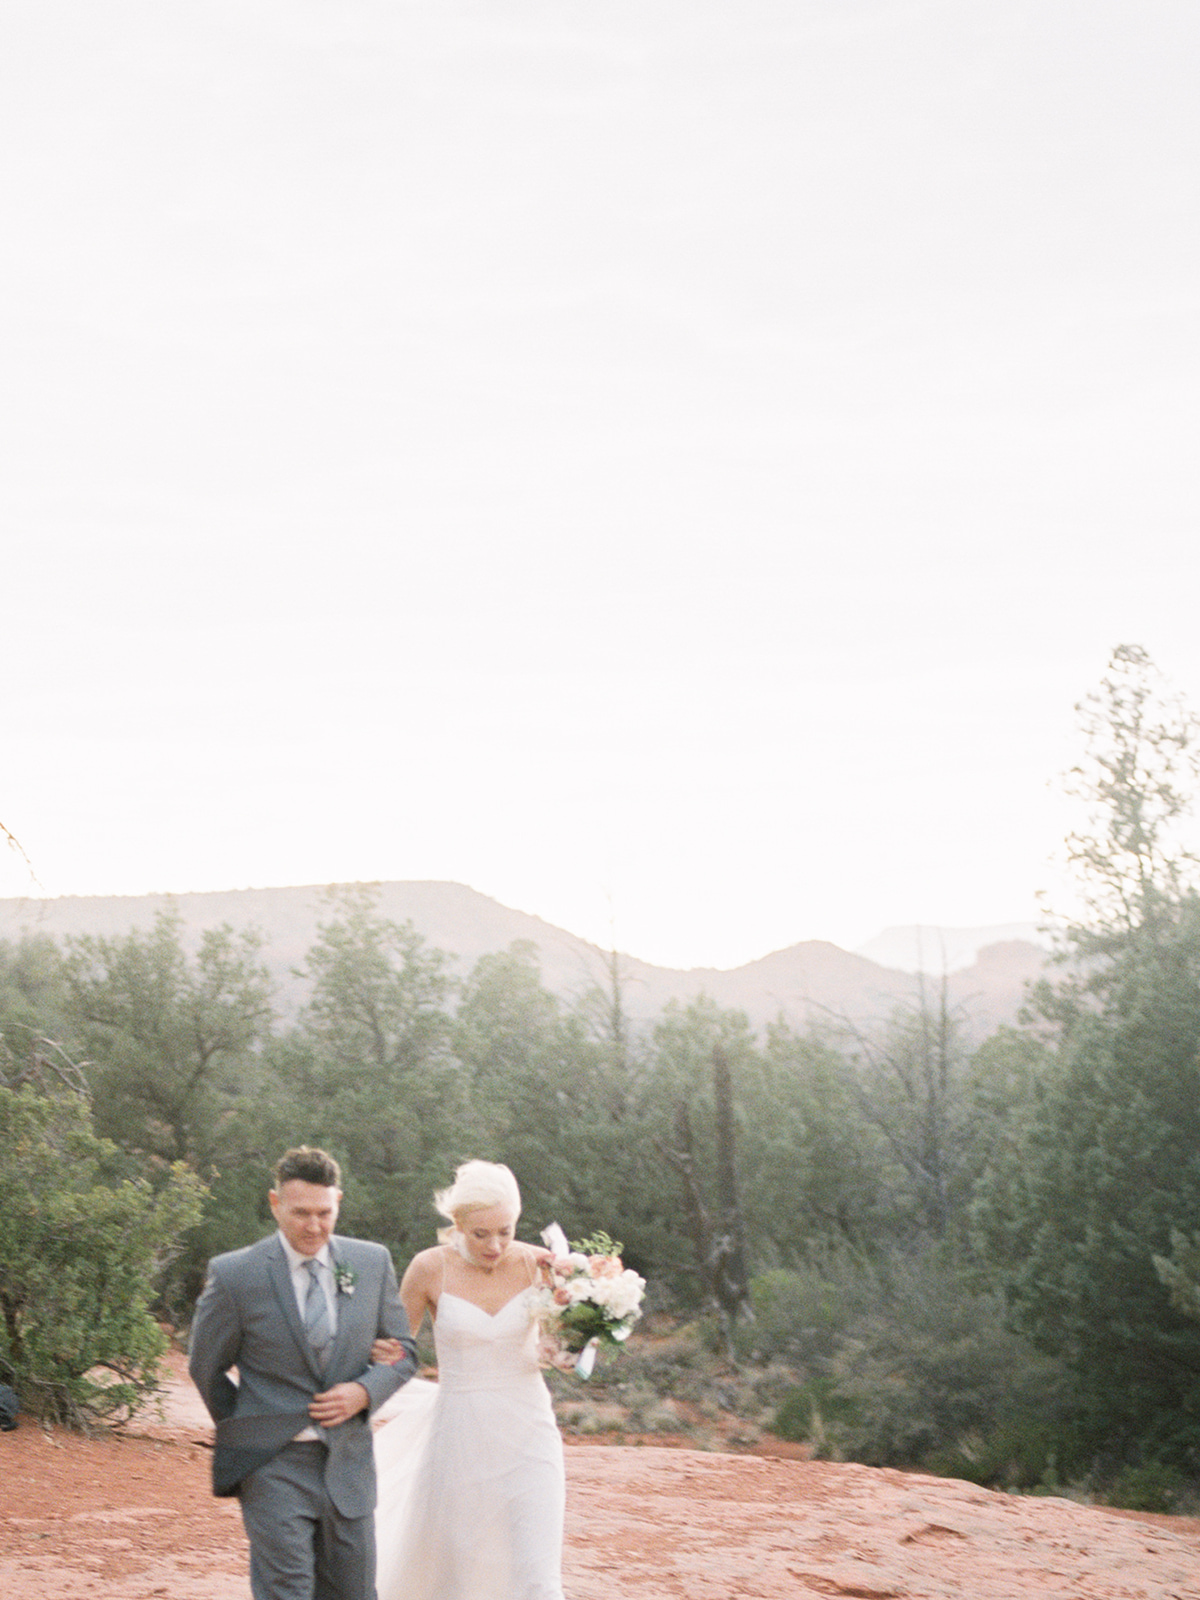 York Sedona Elopement - Ball Photo Co Fine Art Film Wedding Photography-89.jpg